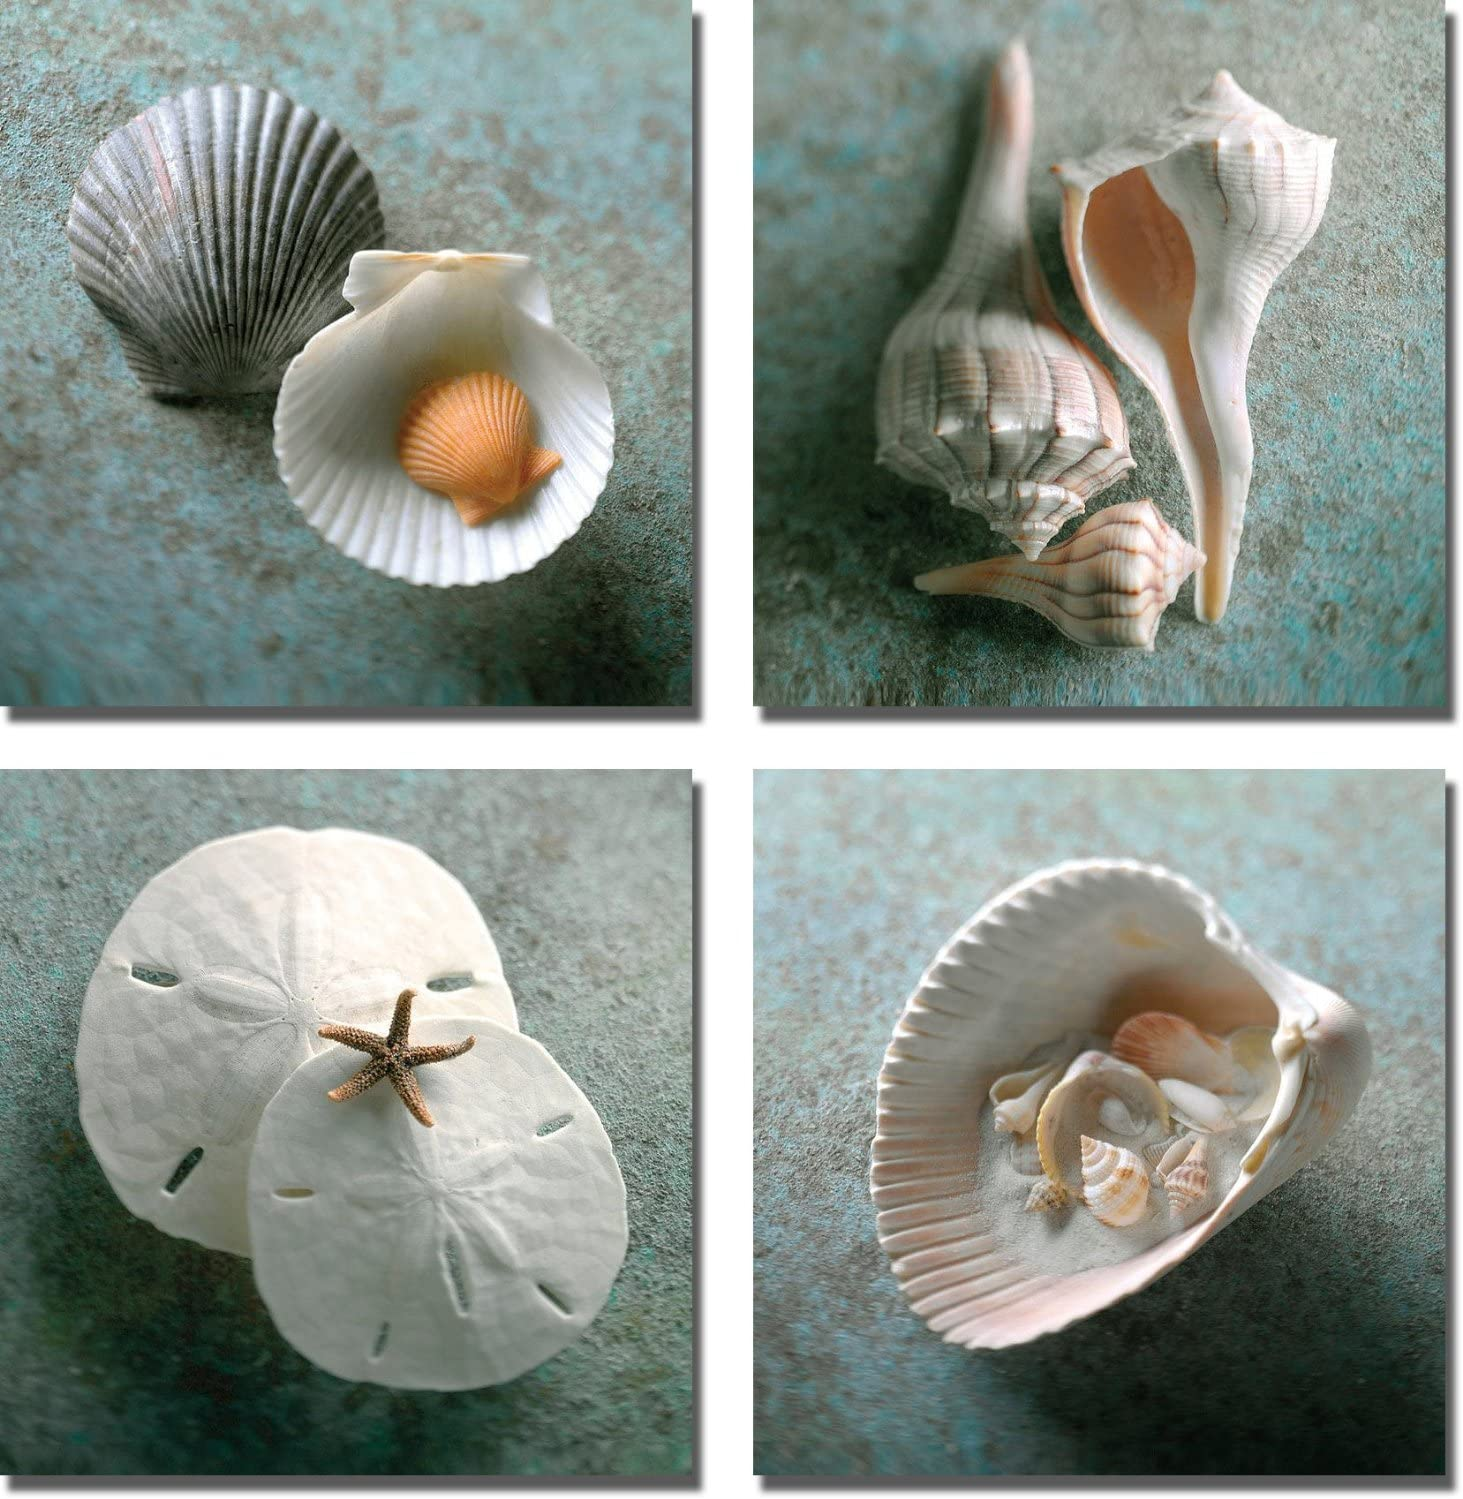 Scallops, Whelks, Sand Dollars, Shells in Shell by WANS 4-pc Premium Gallery-Wrapped Canvas Giclee Art Set (Ready-to-Hang)